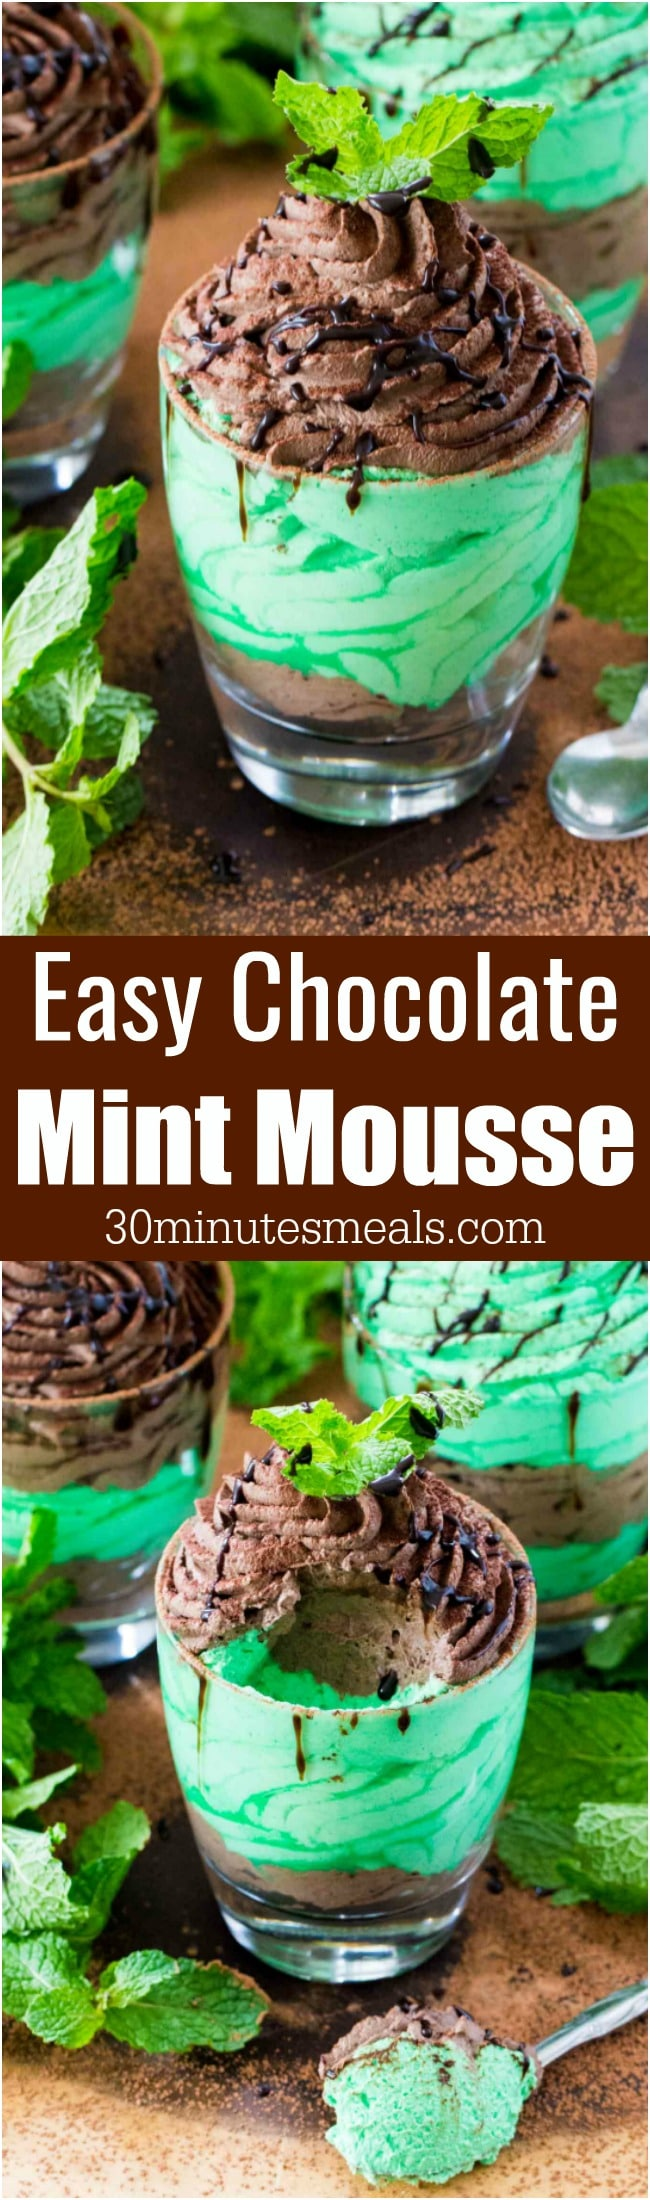 Easy Chocolate Mint Mousse made with just a few ingredients is a flavorful and creamy take on the classic, more labor intensive mousse.